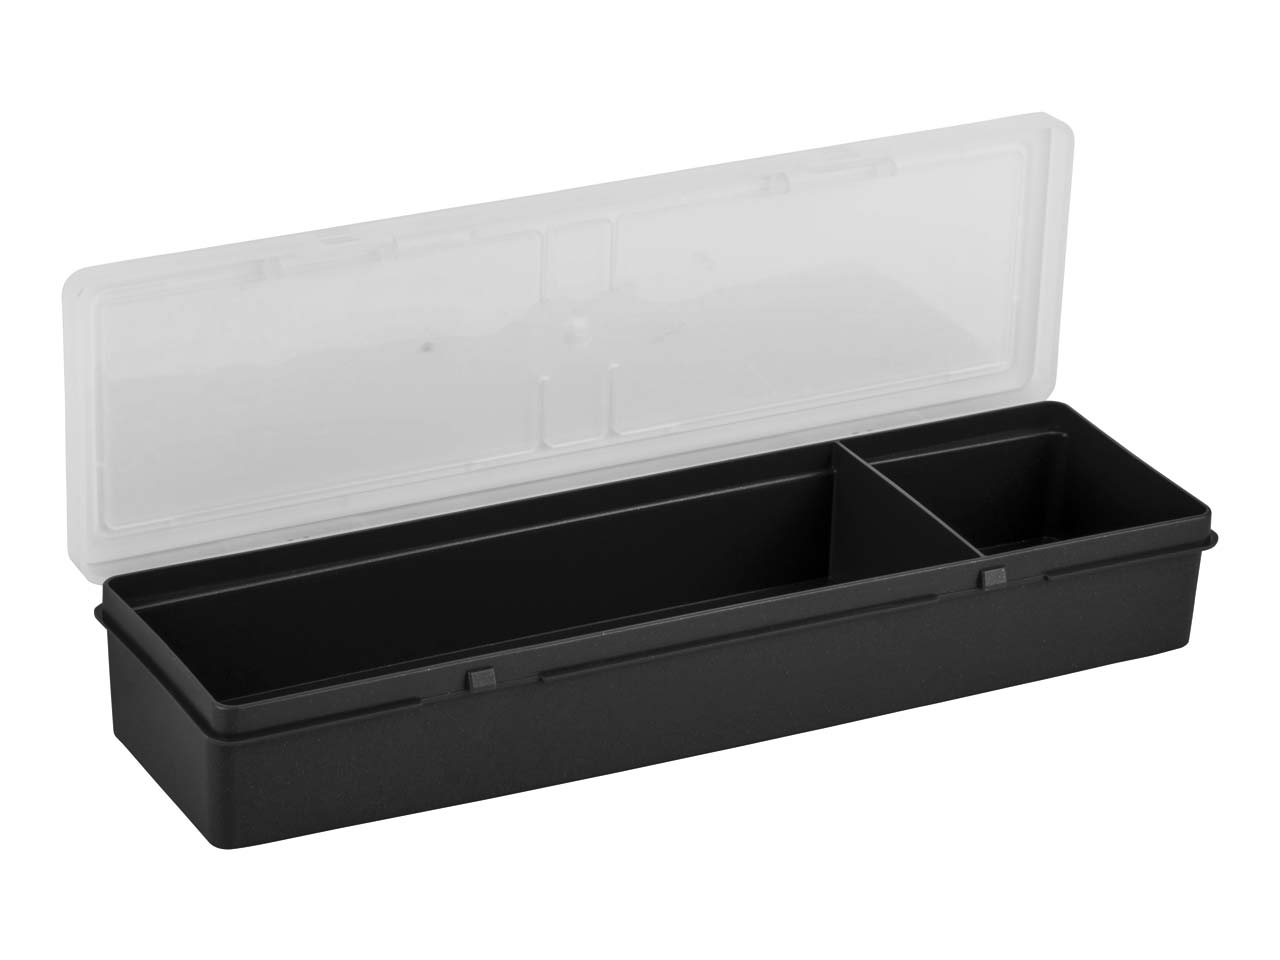 Wham Long Project Box Organiser    30x10x4.5cm 2 Compartments Black